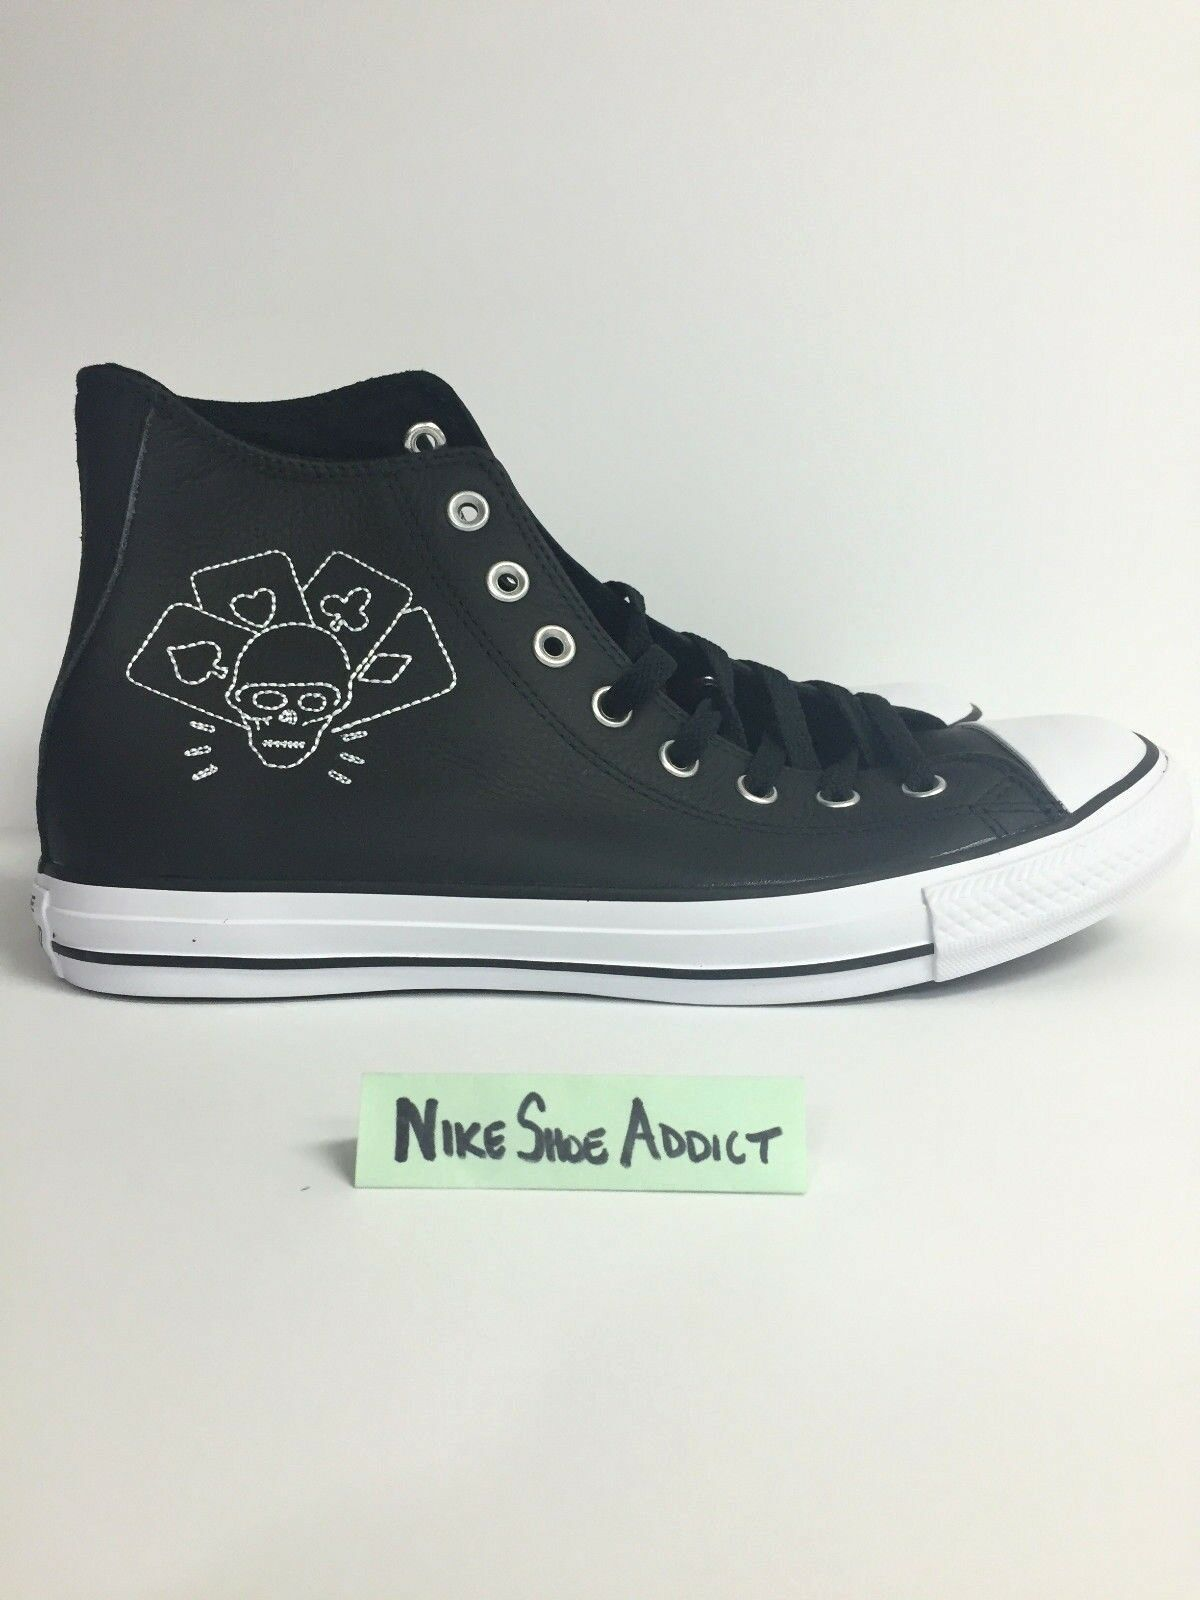 CONVERSE ALL STAR CHUCK TAYLOR CTAS HI BLACK WHITE 155074C UNISEX NEW